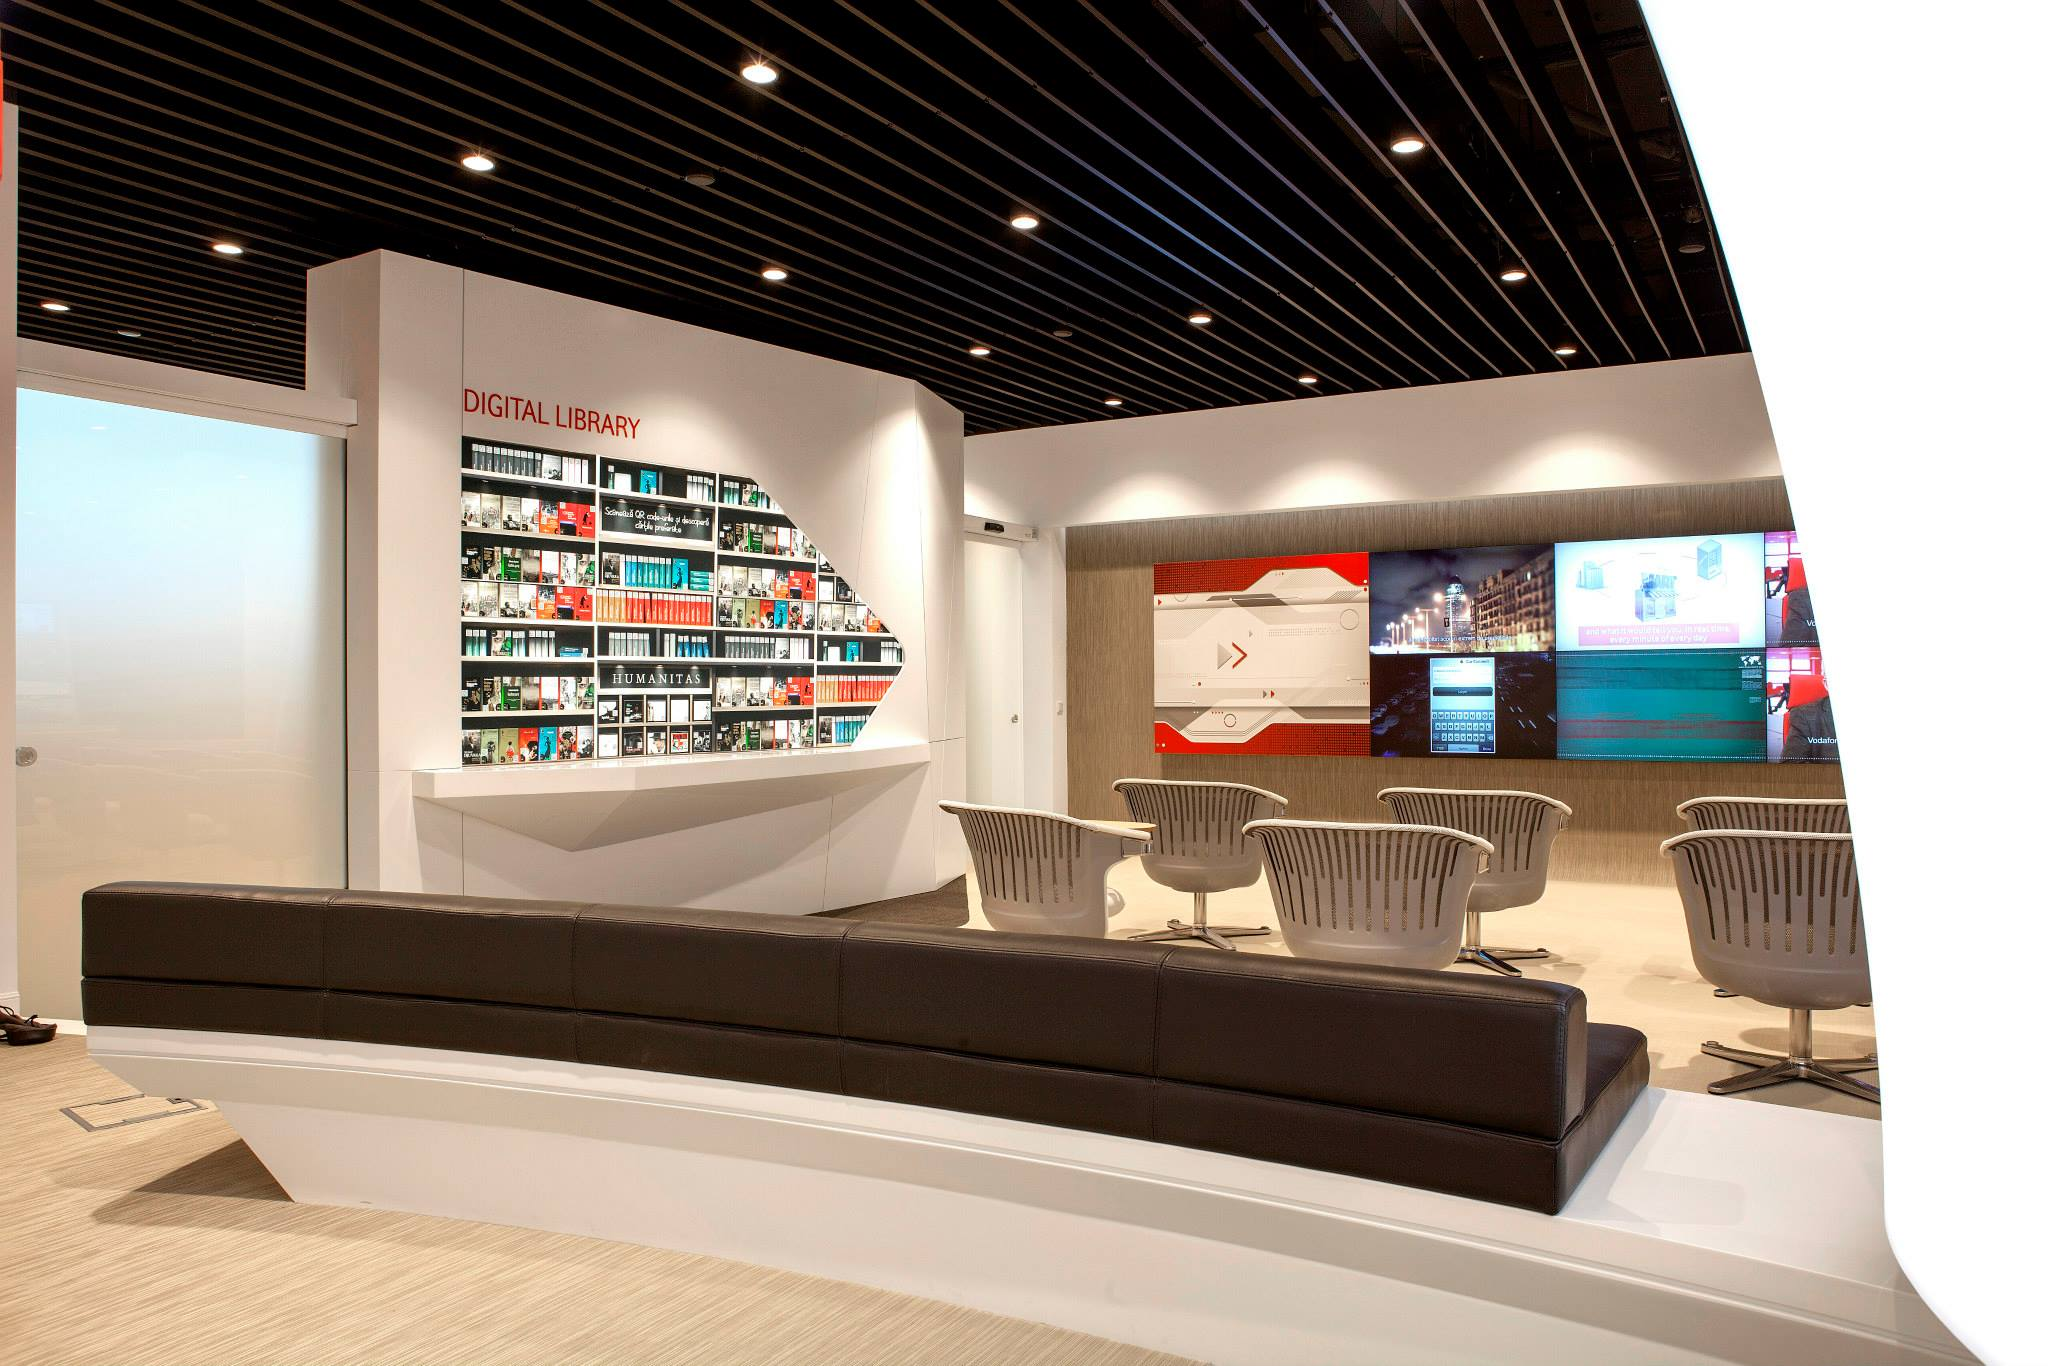 VODAFONE-Customer-Experience-Center-Pipera_Trivenus-Ama-Design_11